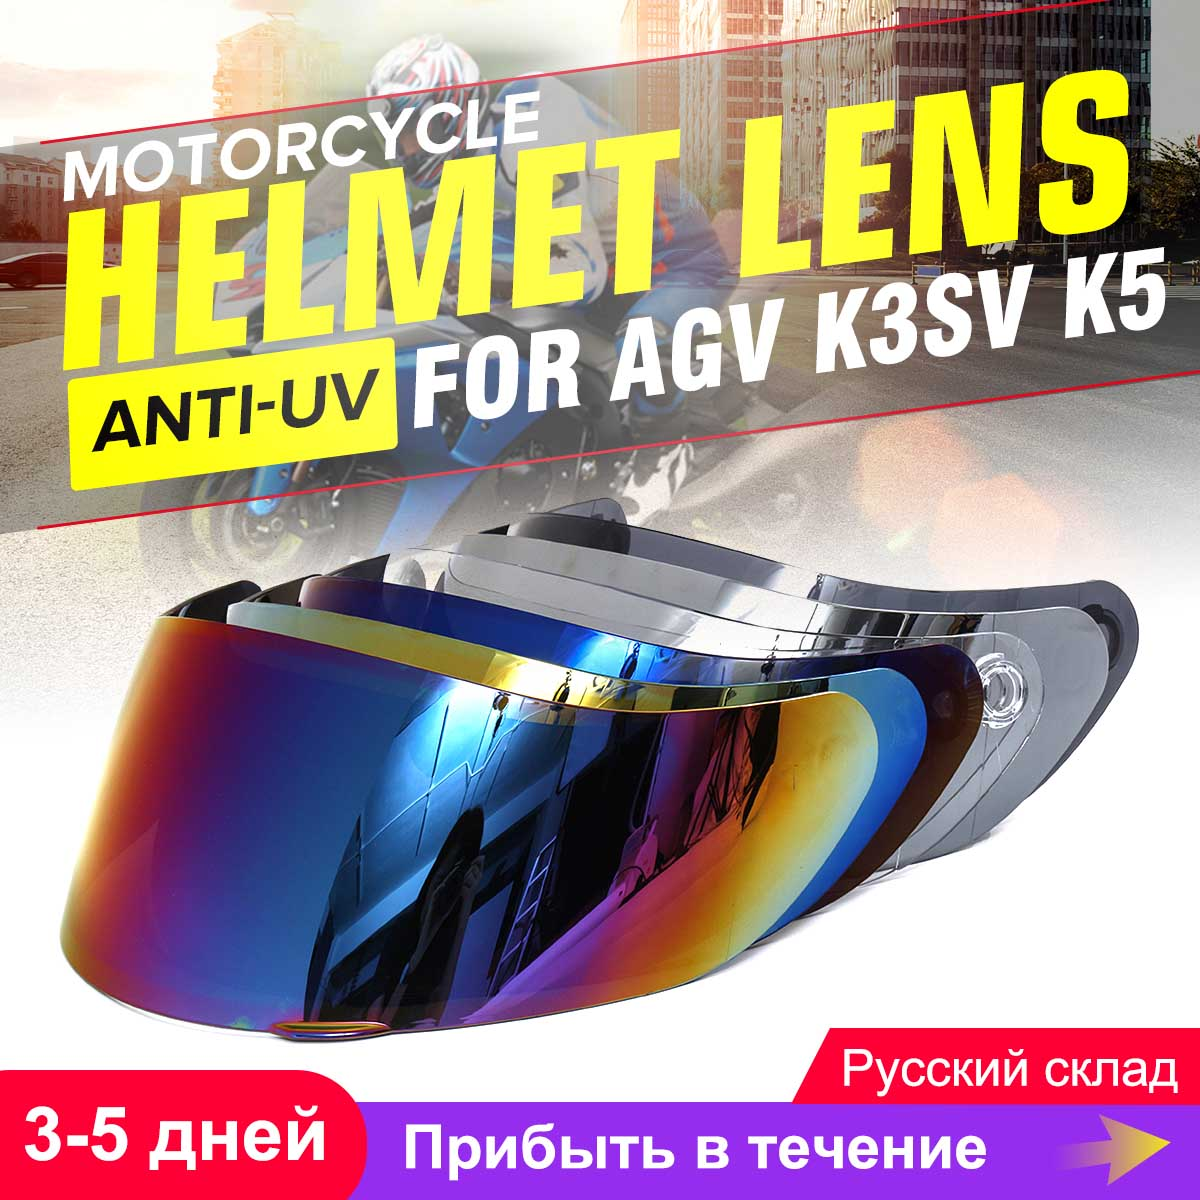 Helmet Visor For AGV K5 K3 SV Motorcycle Helmet Shield Parts Original Glasses For Agv K3 Sv K5 Motorbike Helmet Lens Full Face